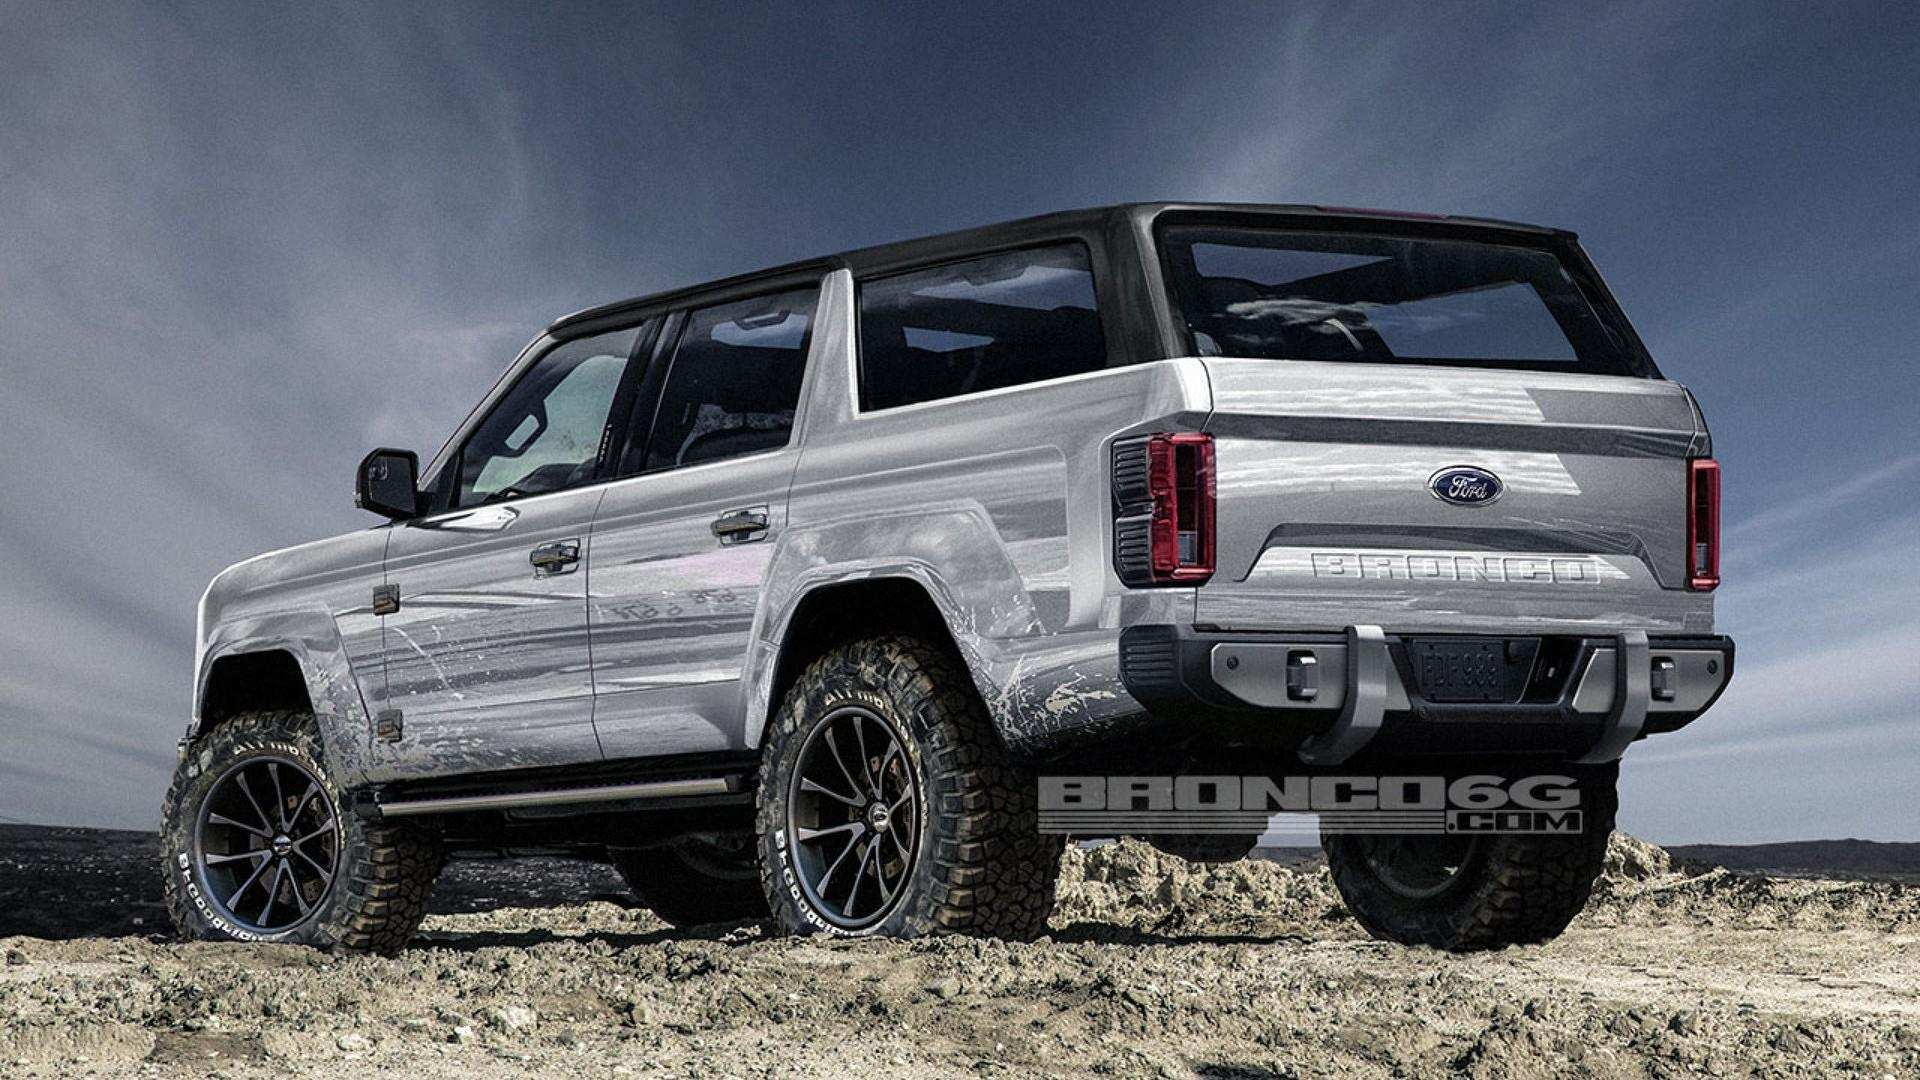 33 All New 2019 Ford Bronco 4 Door Price